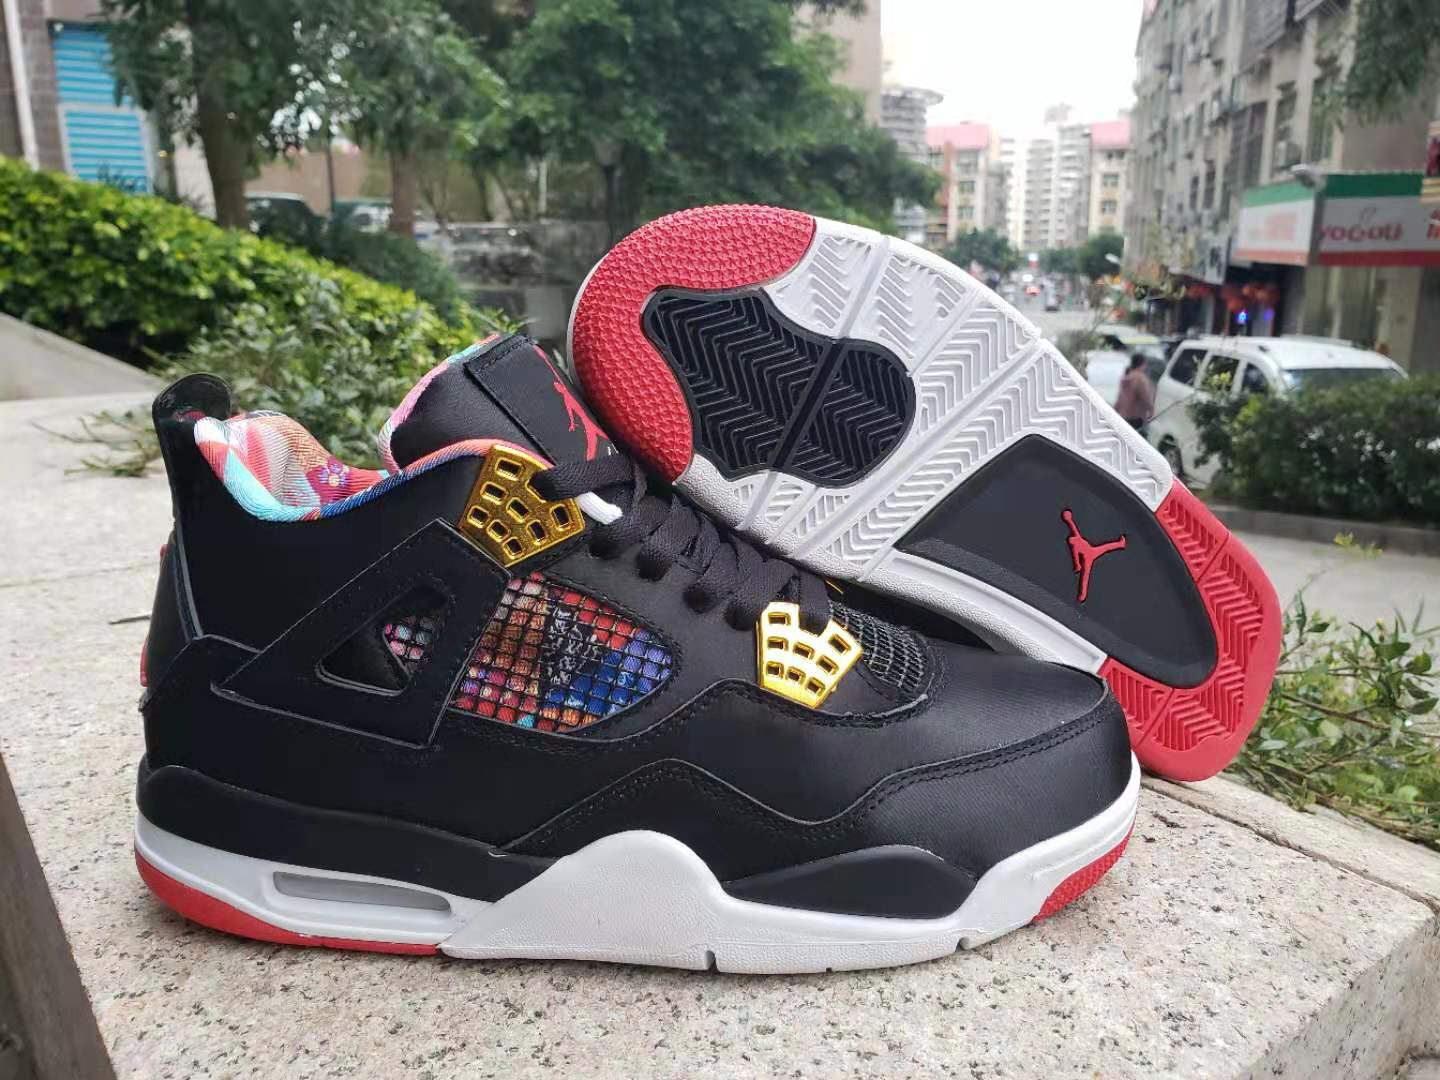 Air Jordan 4 CNY of 2019 Black Gold Red Shoes